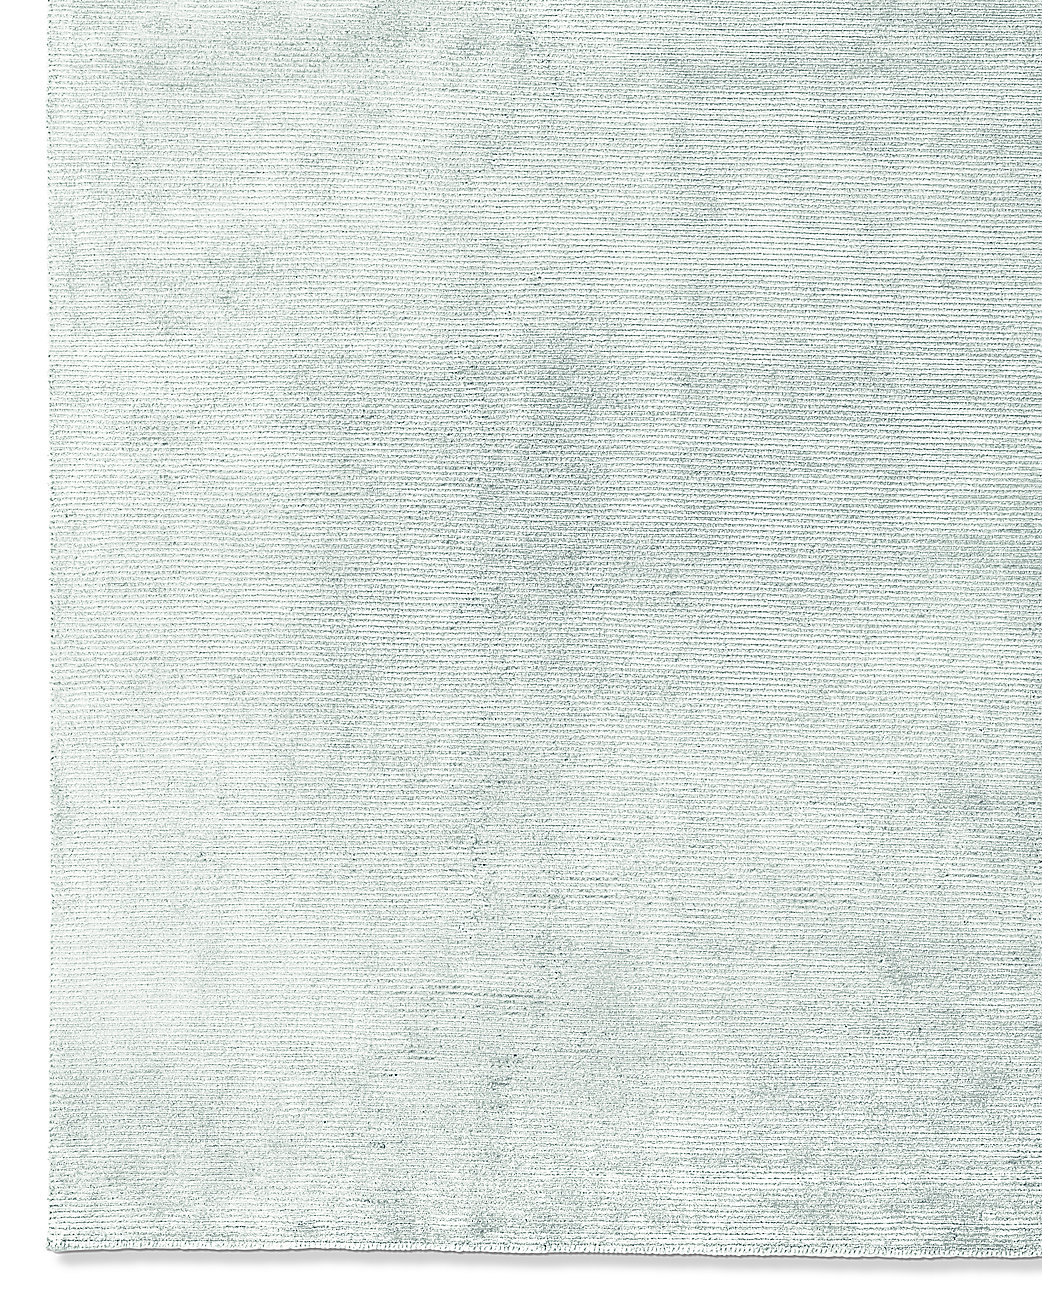 Textured Cord Rug - Silver Mist